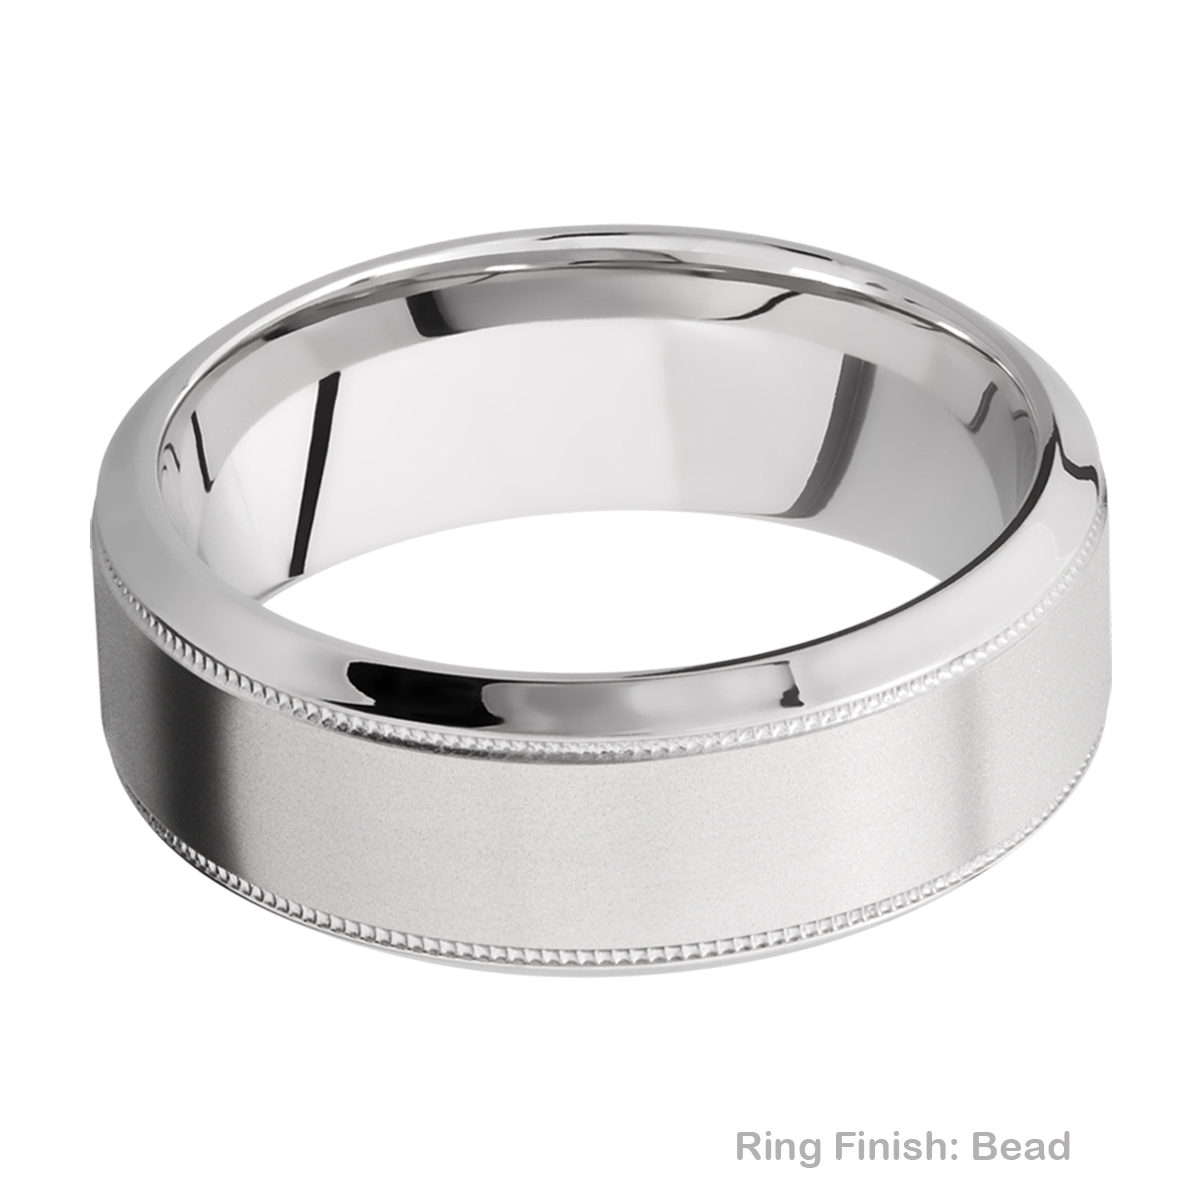 Lashbrook 8HB2UMIL Titanium Wedding Ring or Band Alternative View 3